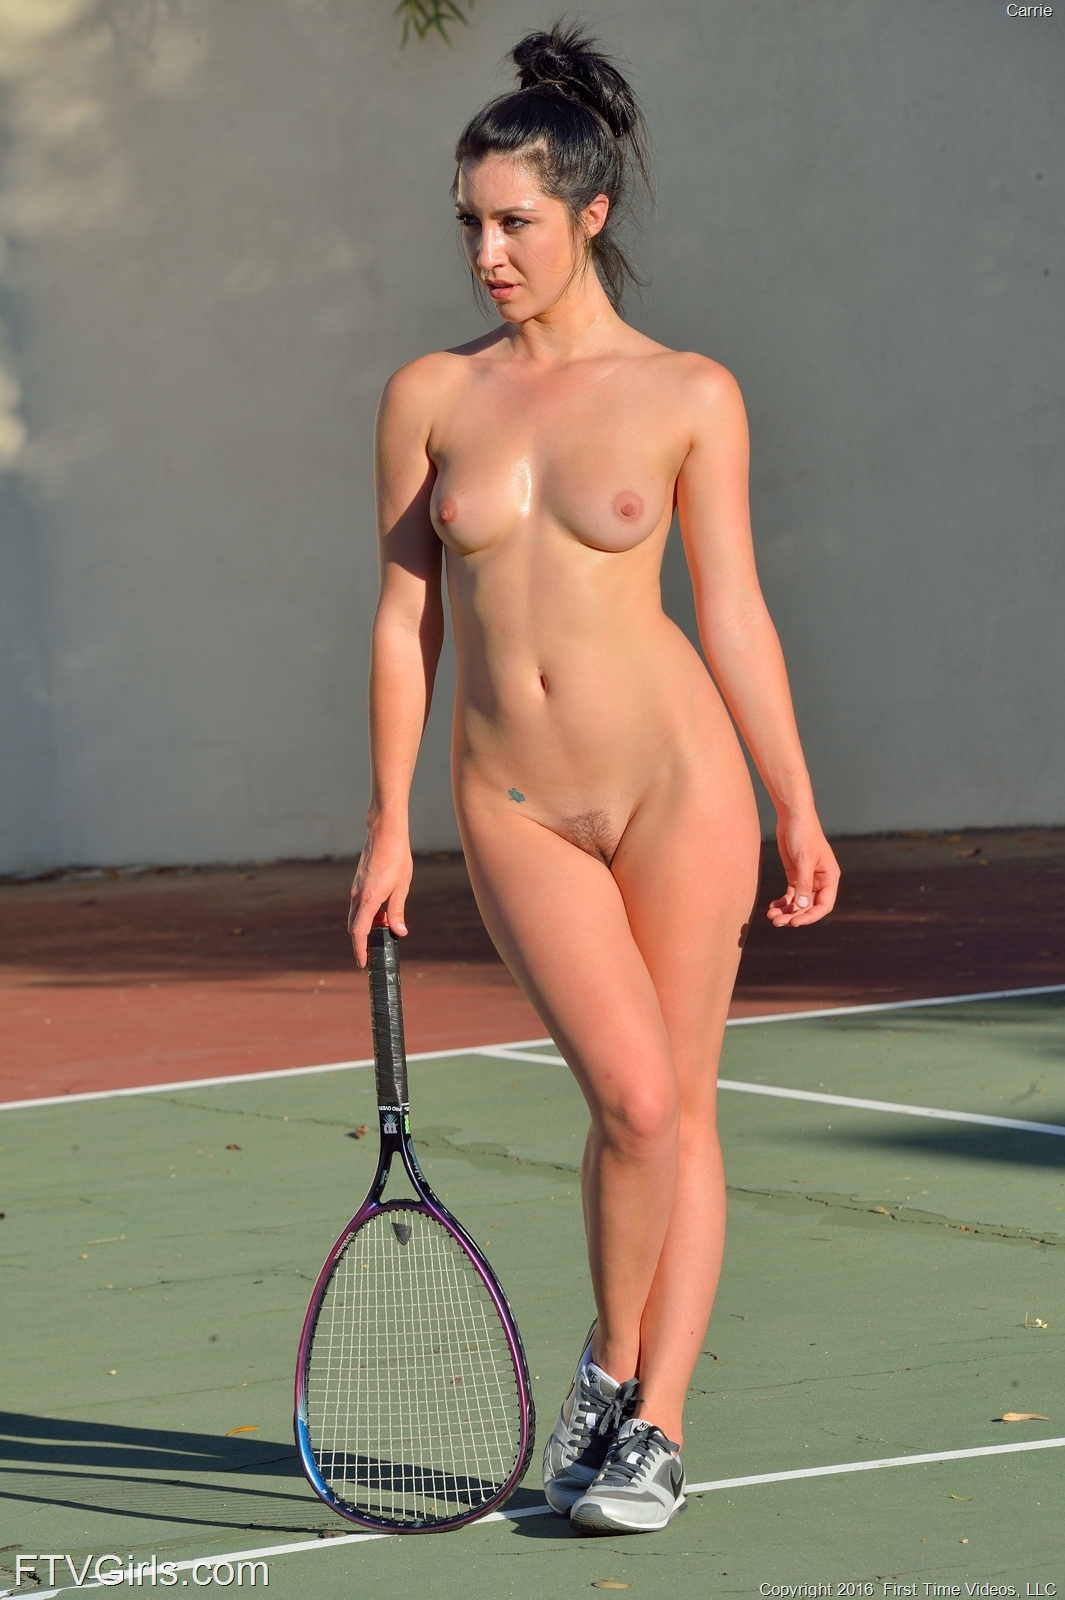 Bottomless Tennis With Carrie - Sexy Gallery Full Photo -2085